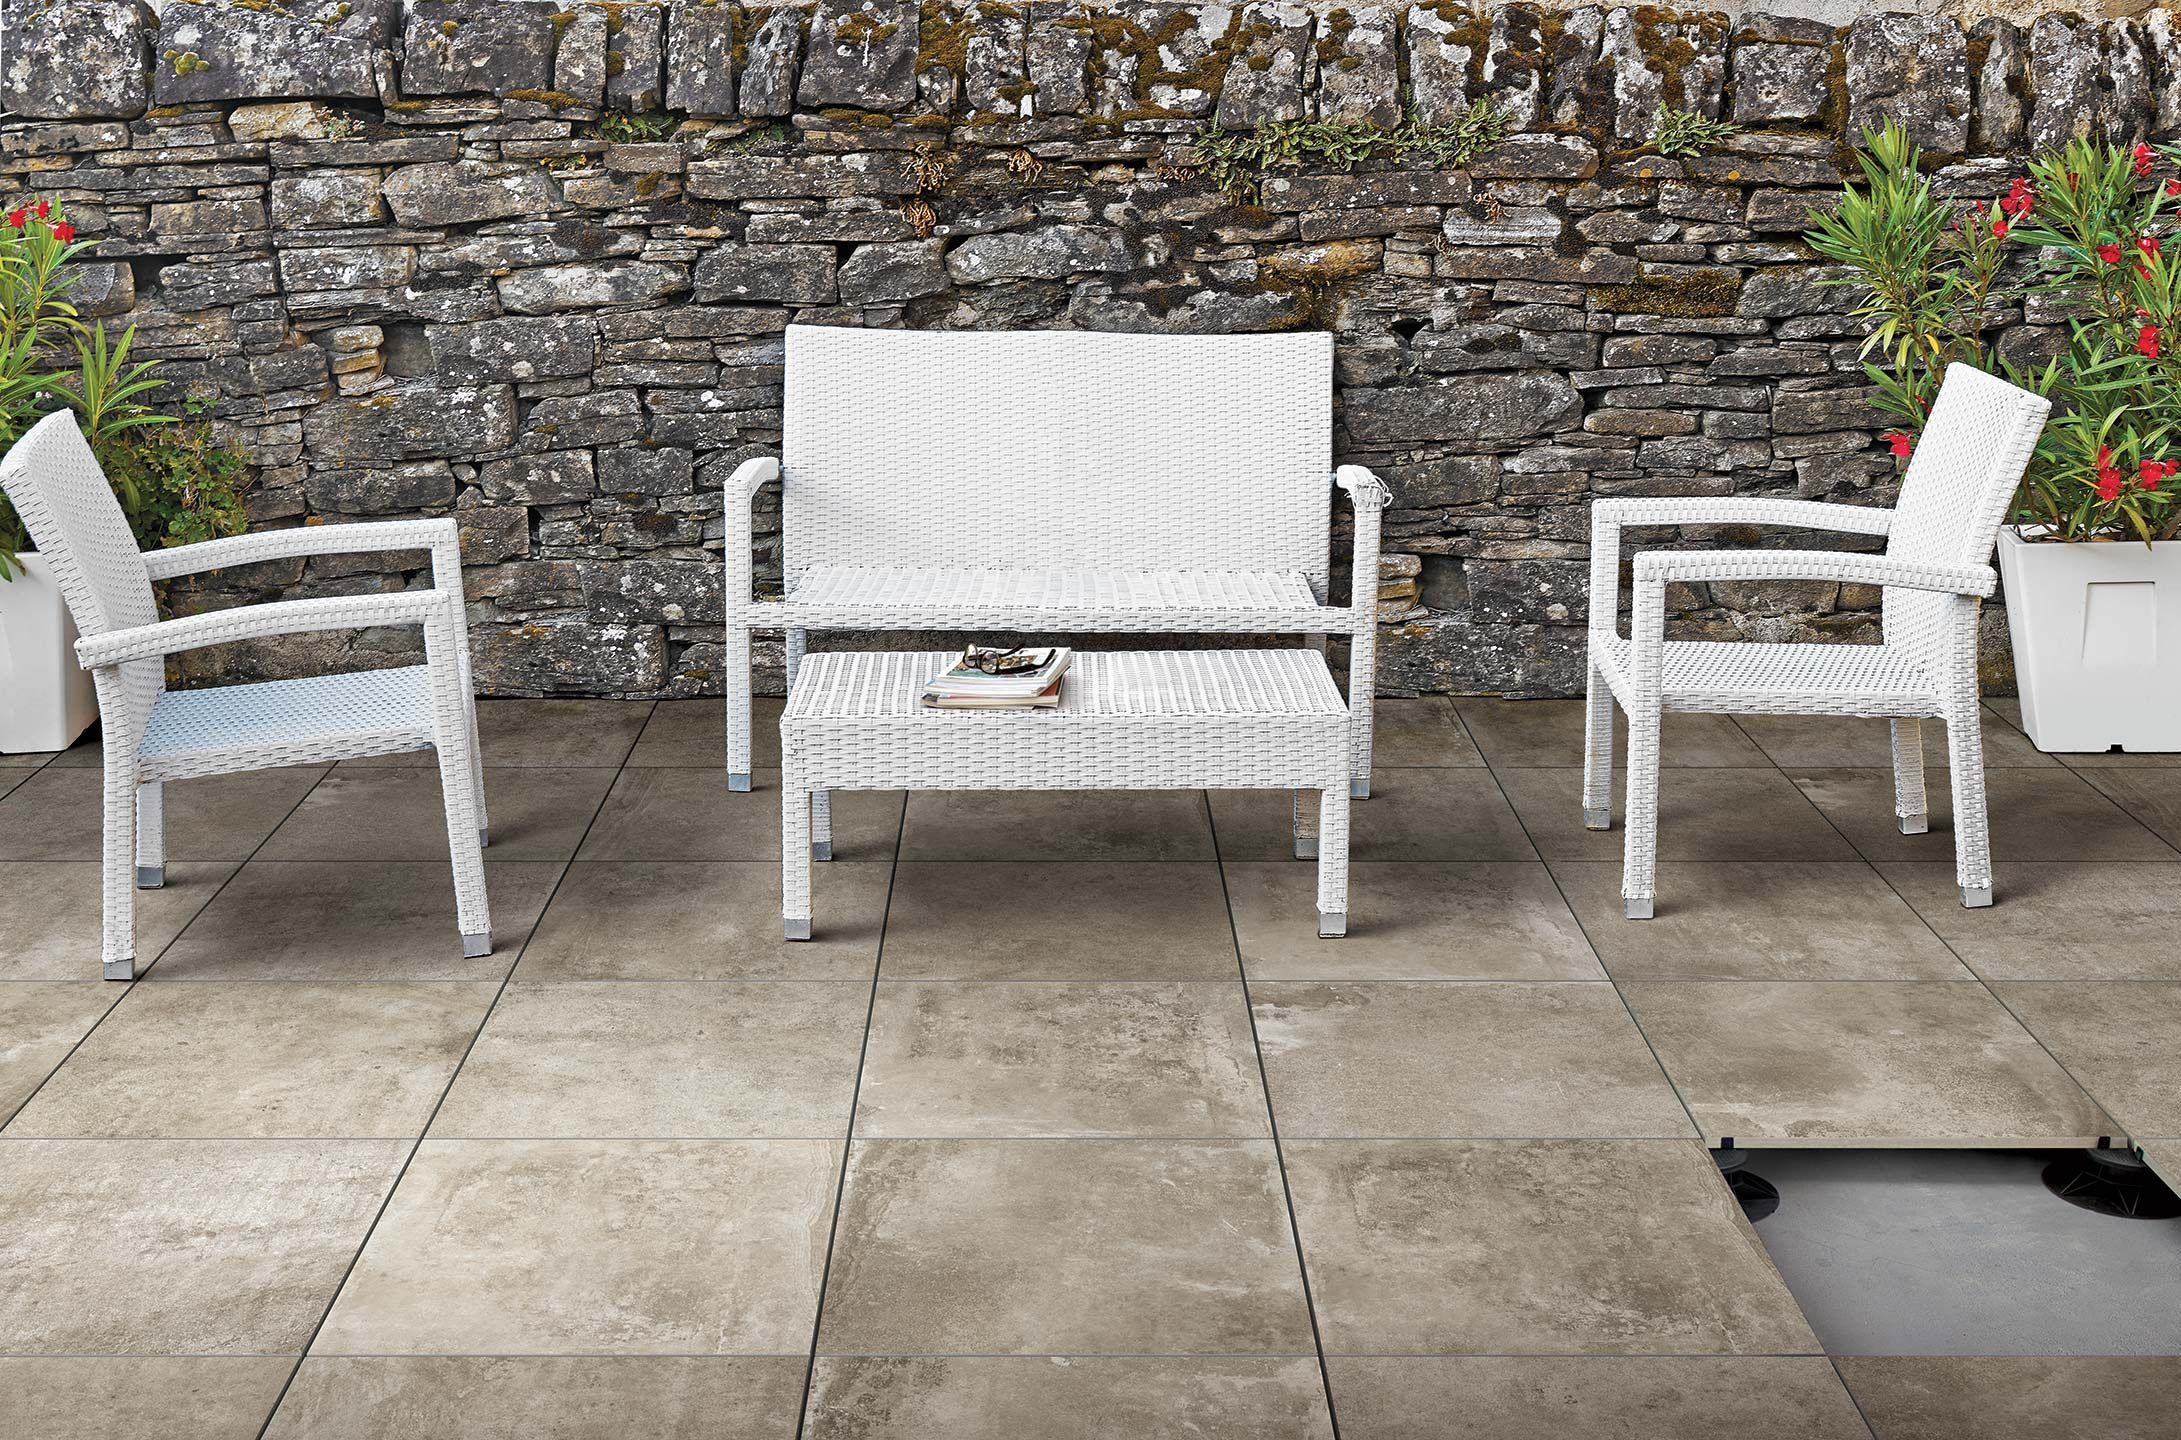 Chic Ceramic Porcelain Stone Tiles For Outdoor La Roche By